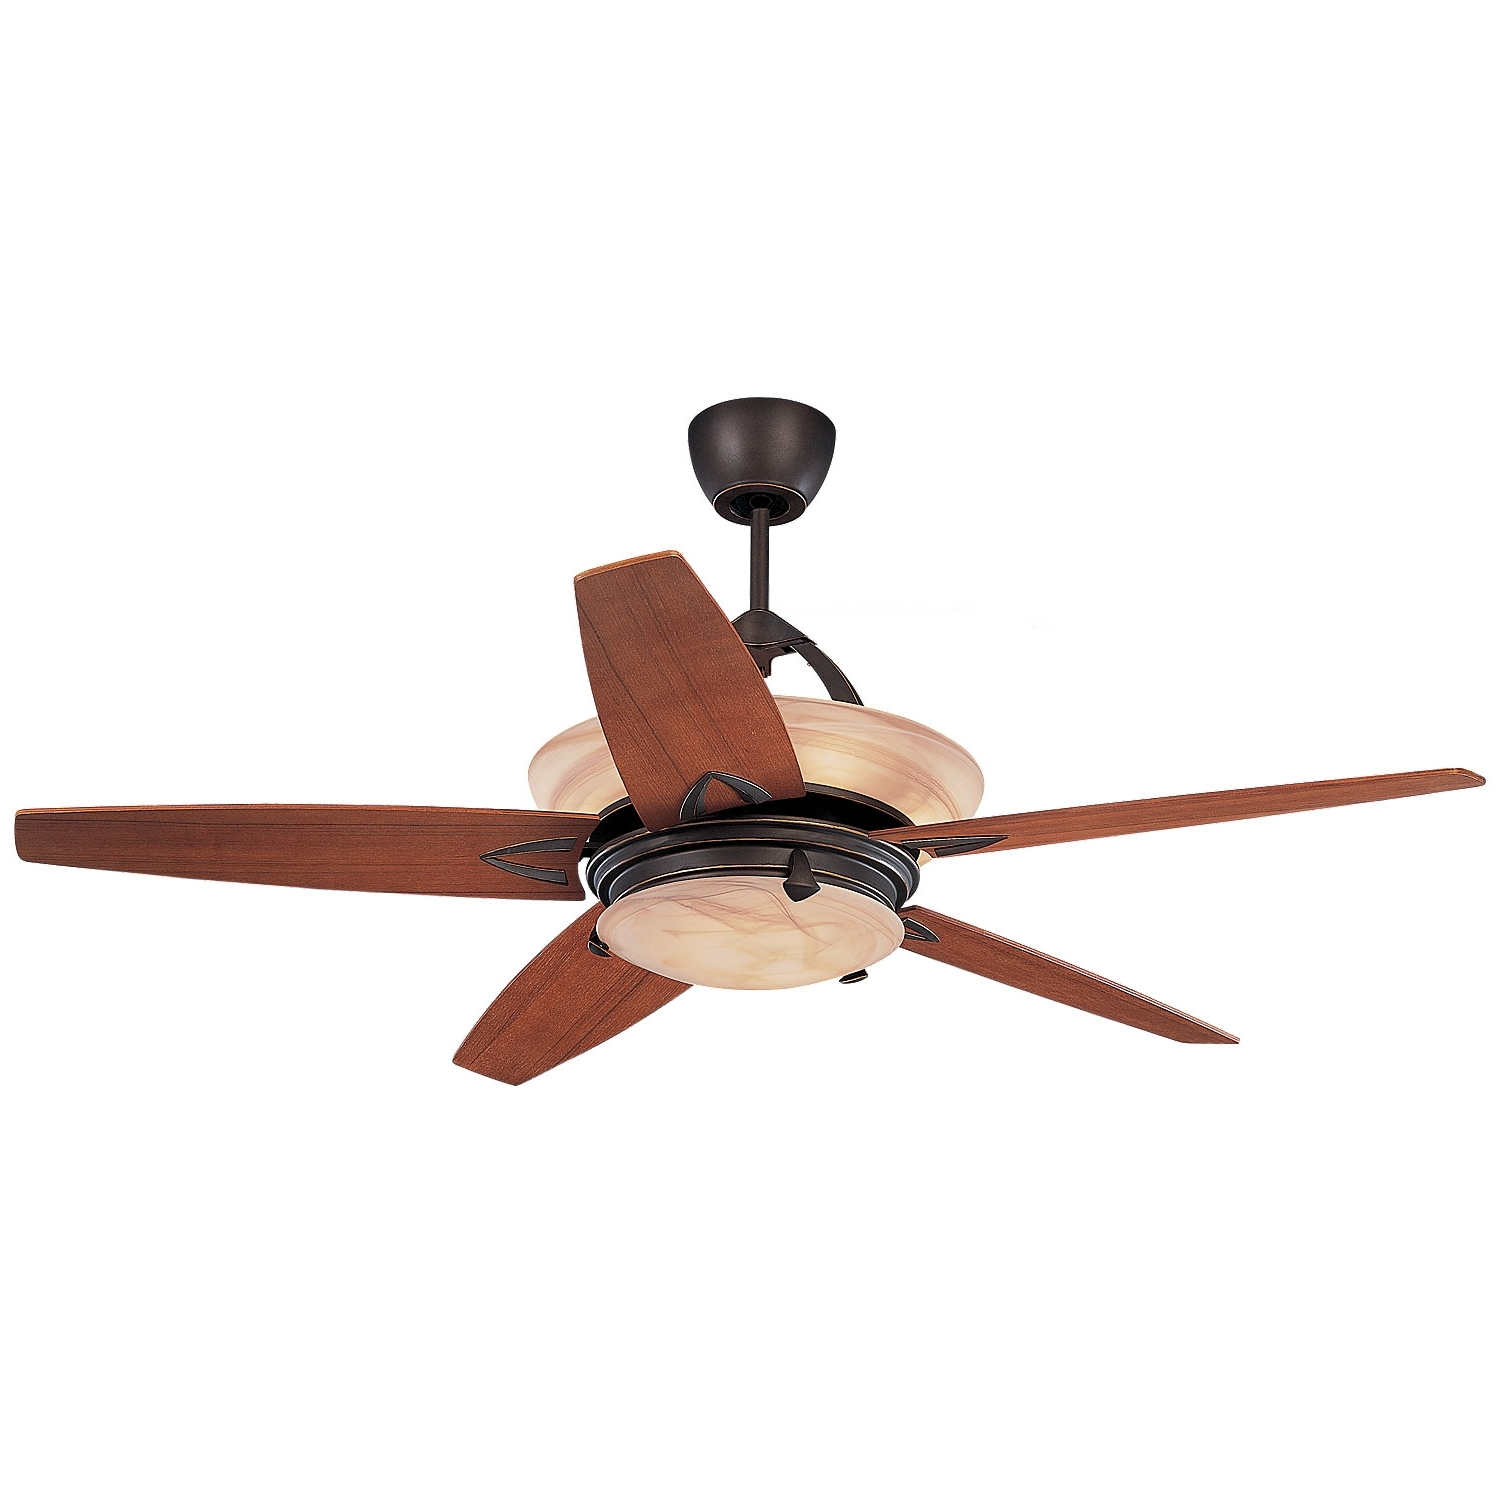 Outdoor Ceiling Fans With Uplights In Latest Monte Carlo Arch Roman Bronze 60 Inch Ceiling Fan With Remote (View 14 of 20)